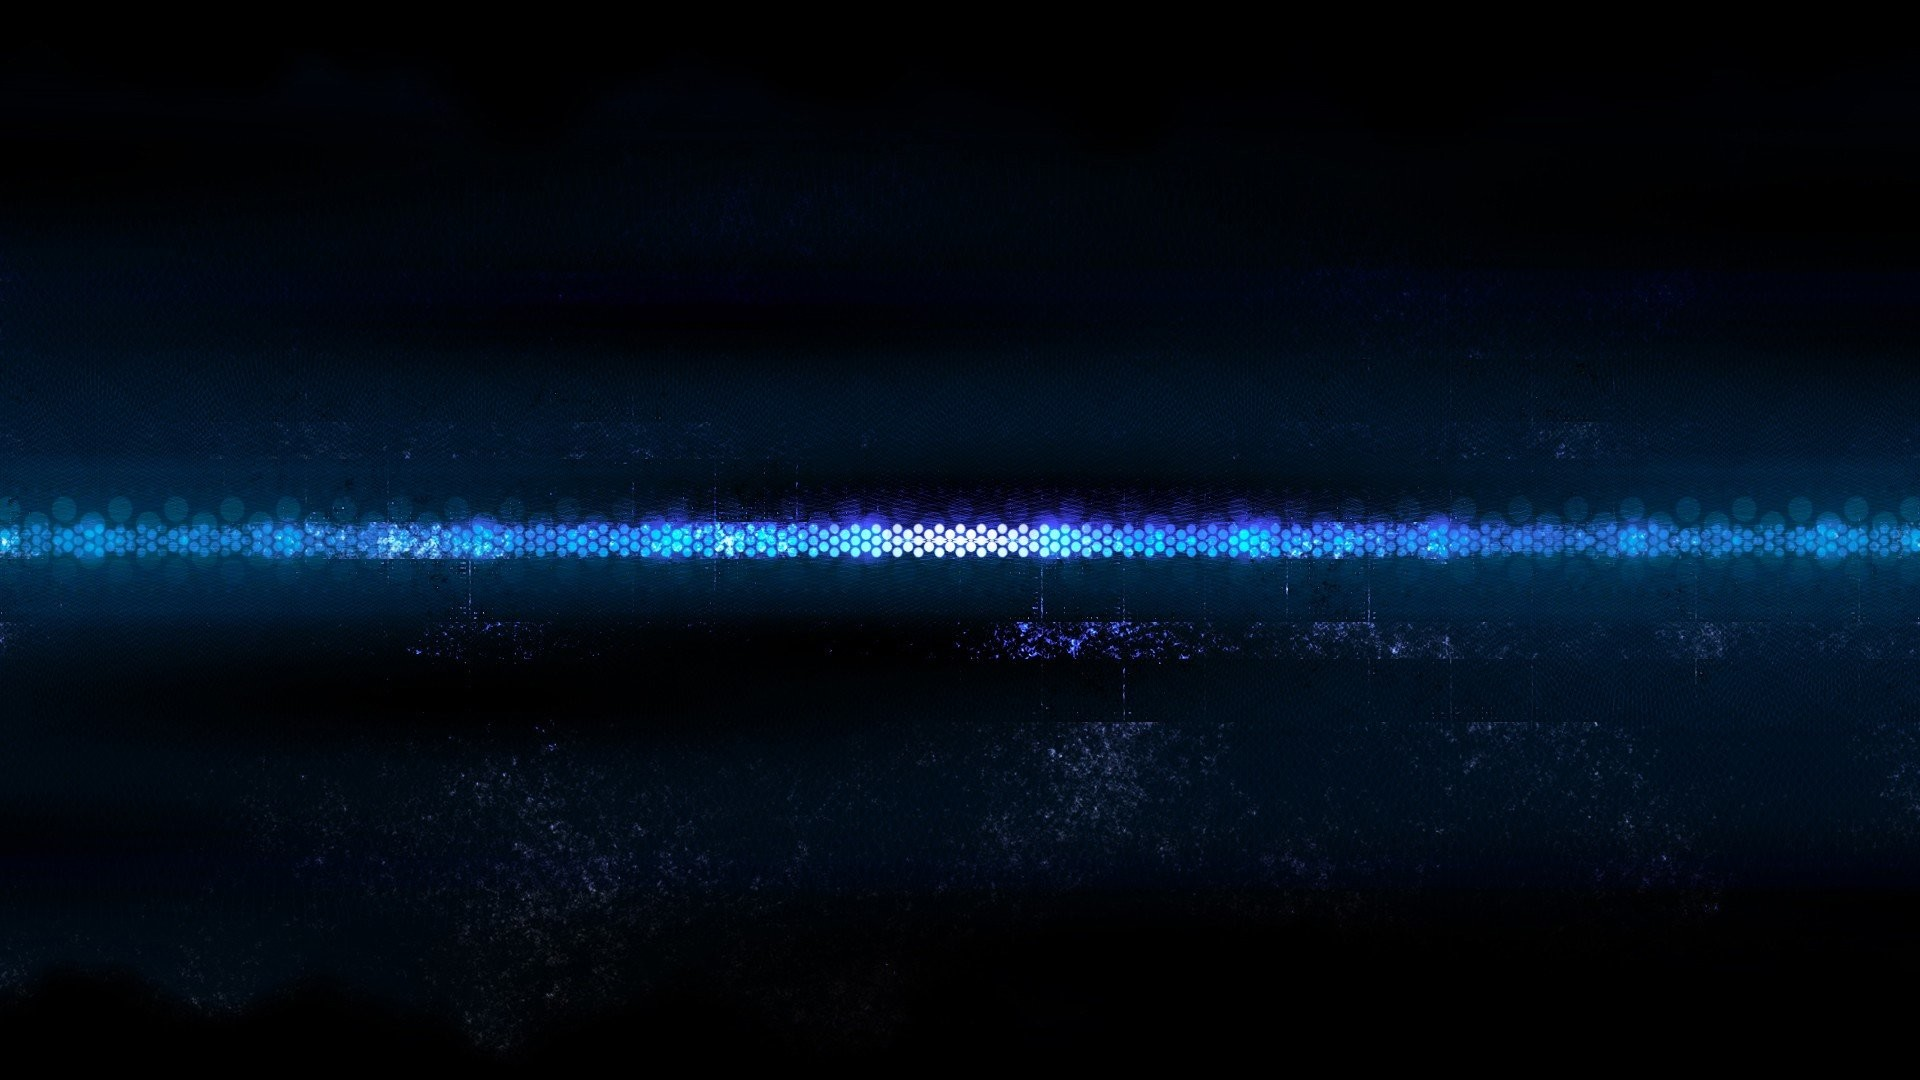 1920x1080 Free Dark Blue d Hd Abstract Wallpapers Download 1600×1200 3D Dark Wallpapers | Adorable